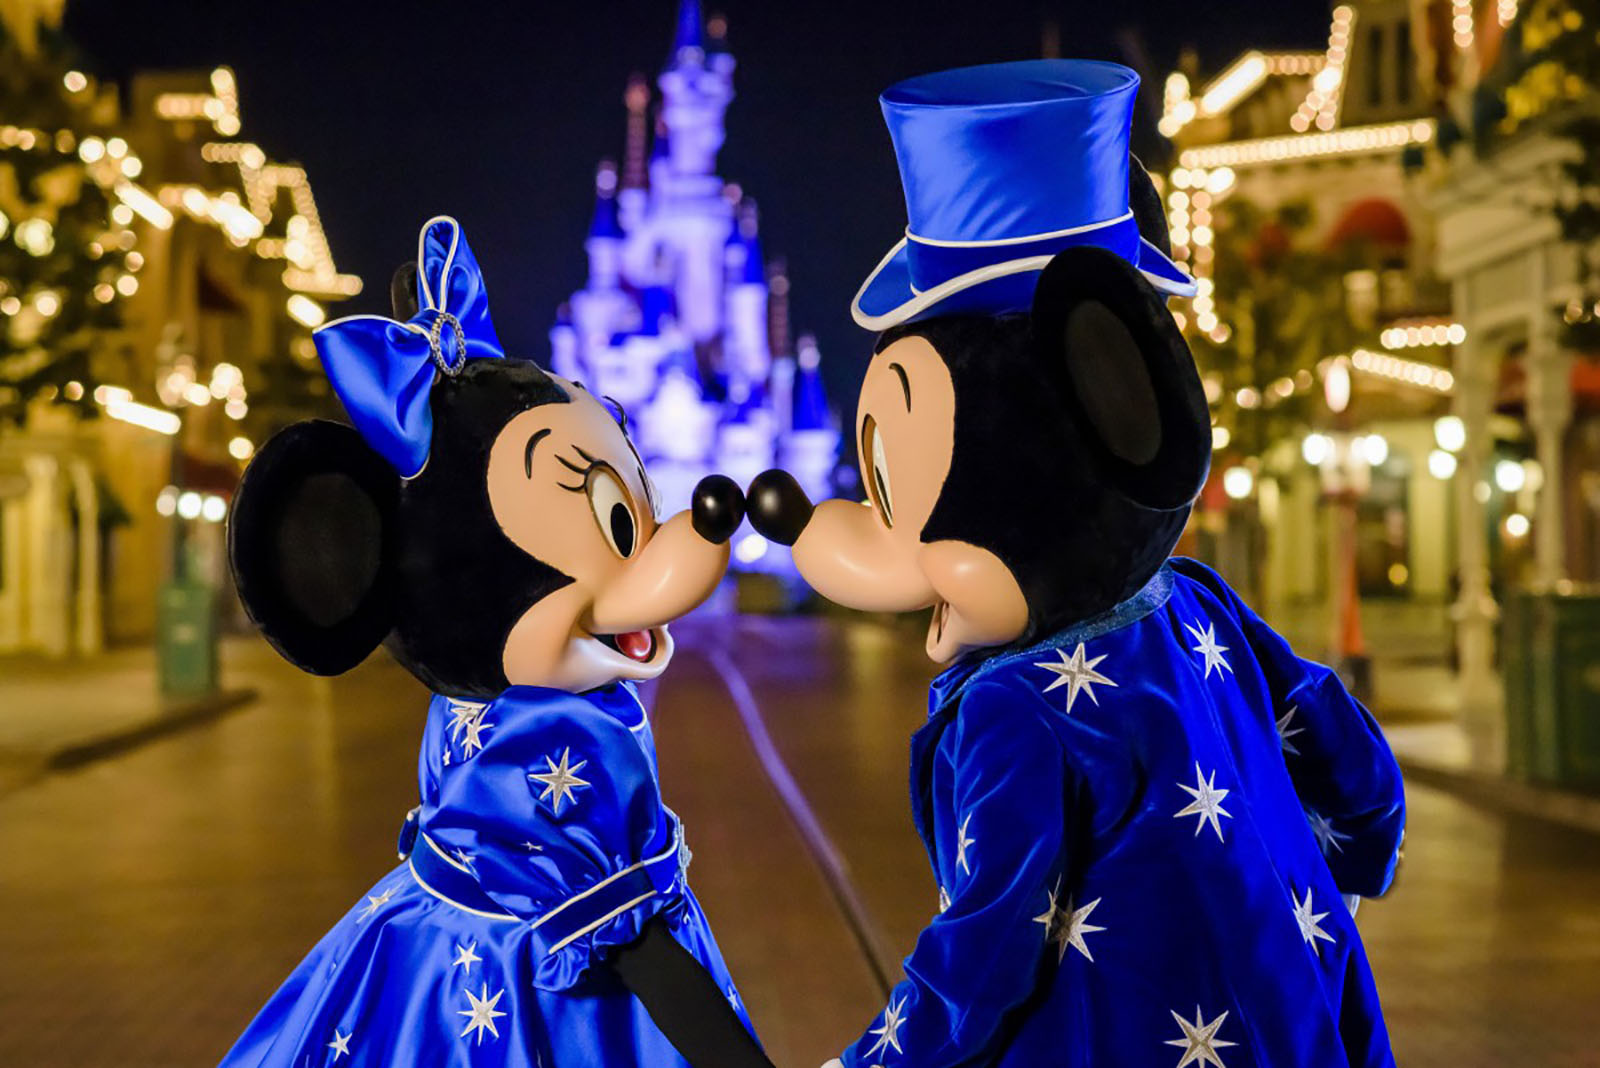 Mickey and Minnie 25th anniversary costumes - Disneyland Paris